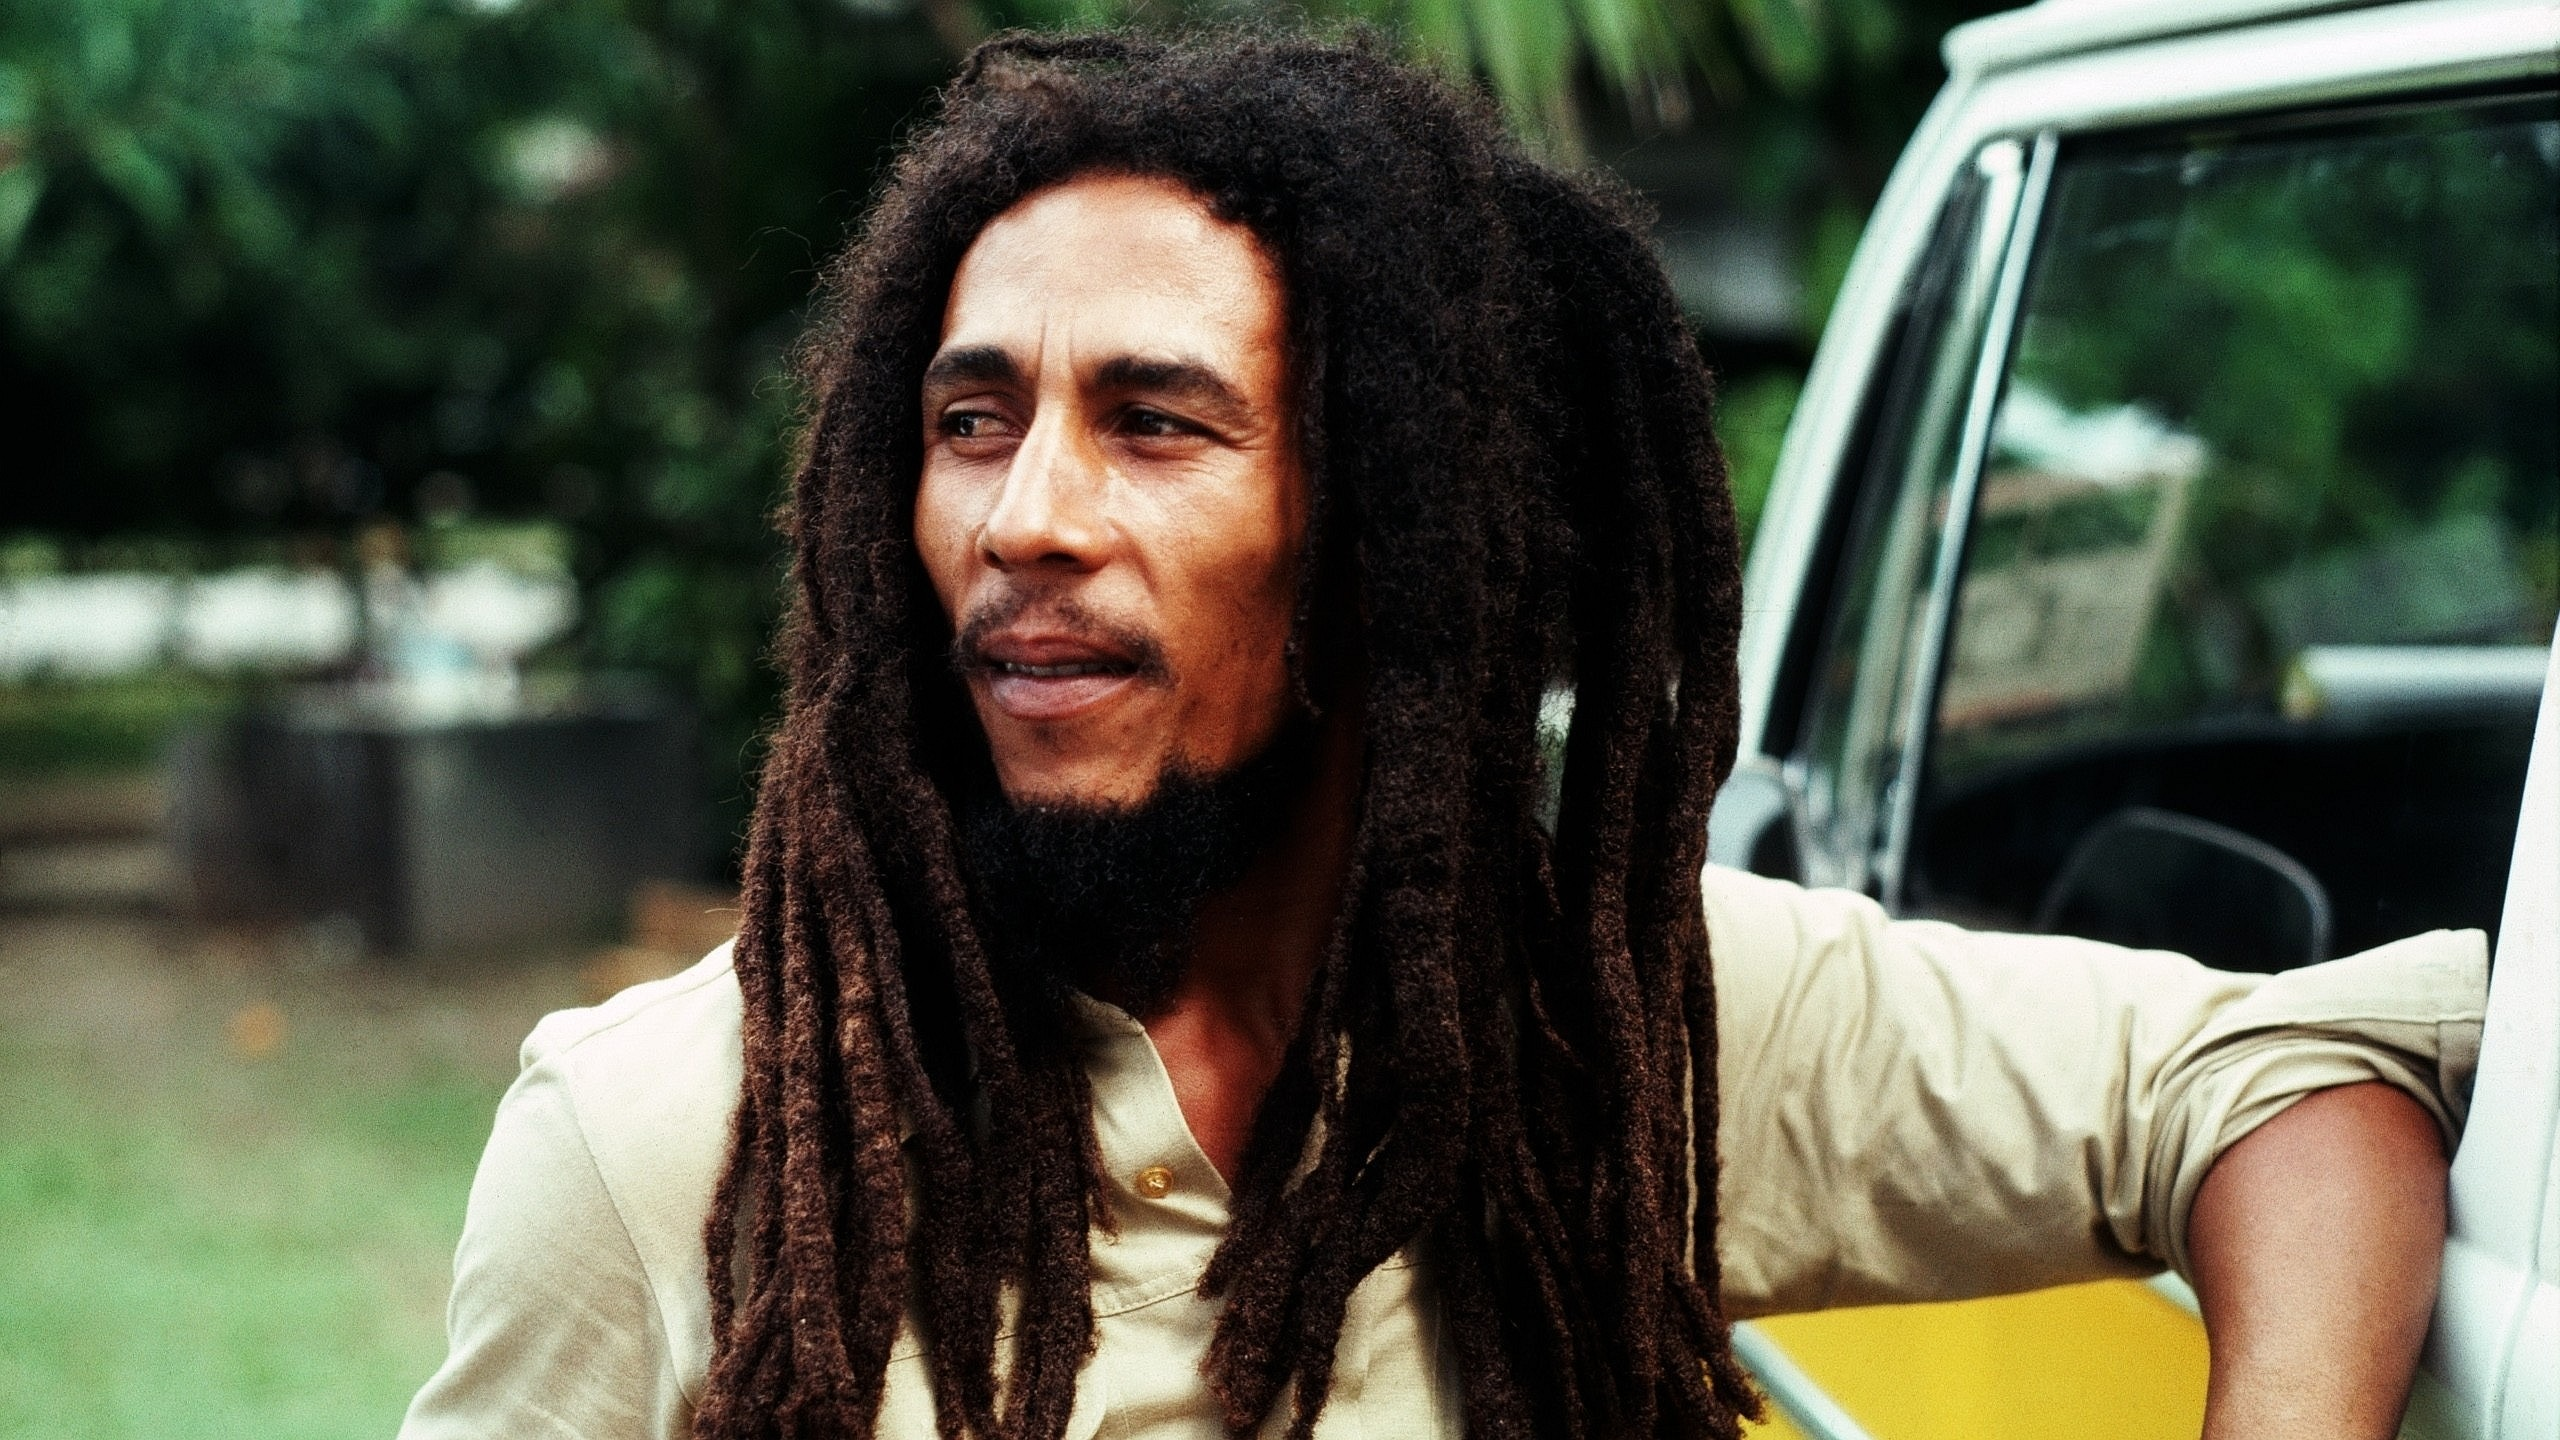 Bob-Marley-Legendary-Dreadlocks